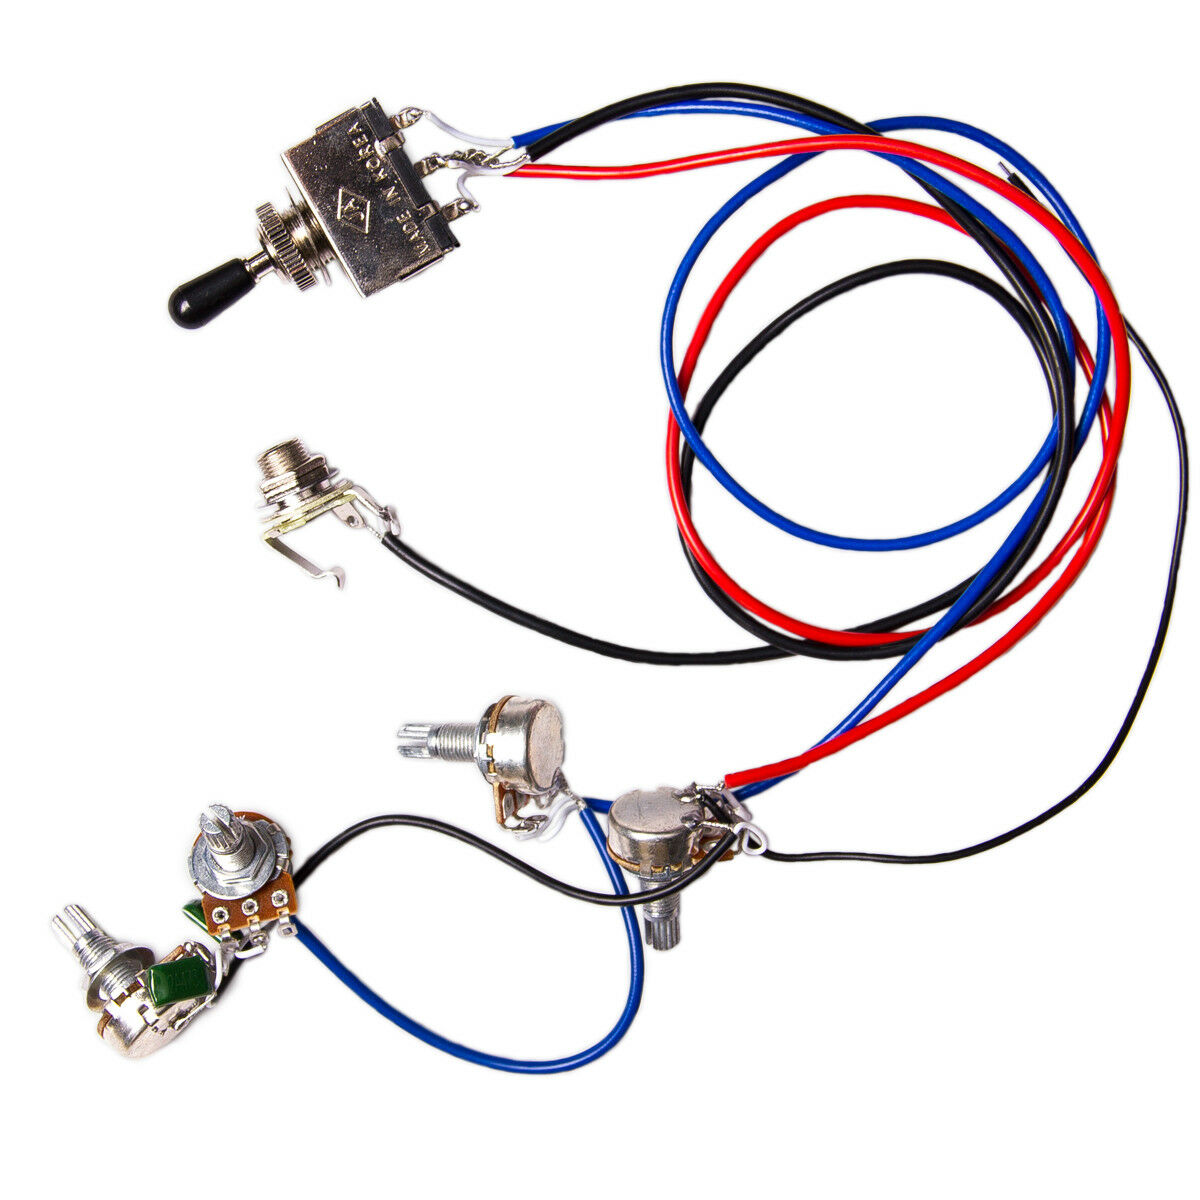 Electric Guitar Wiring Harness Kit 2v2t 3 Way Switch For Gibson Uk Parts